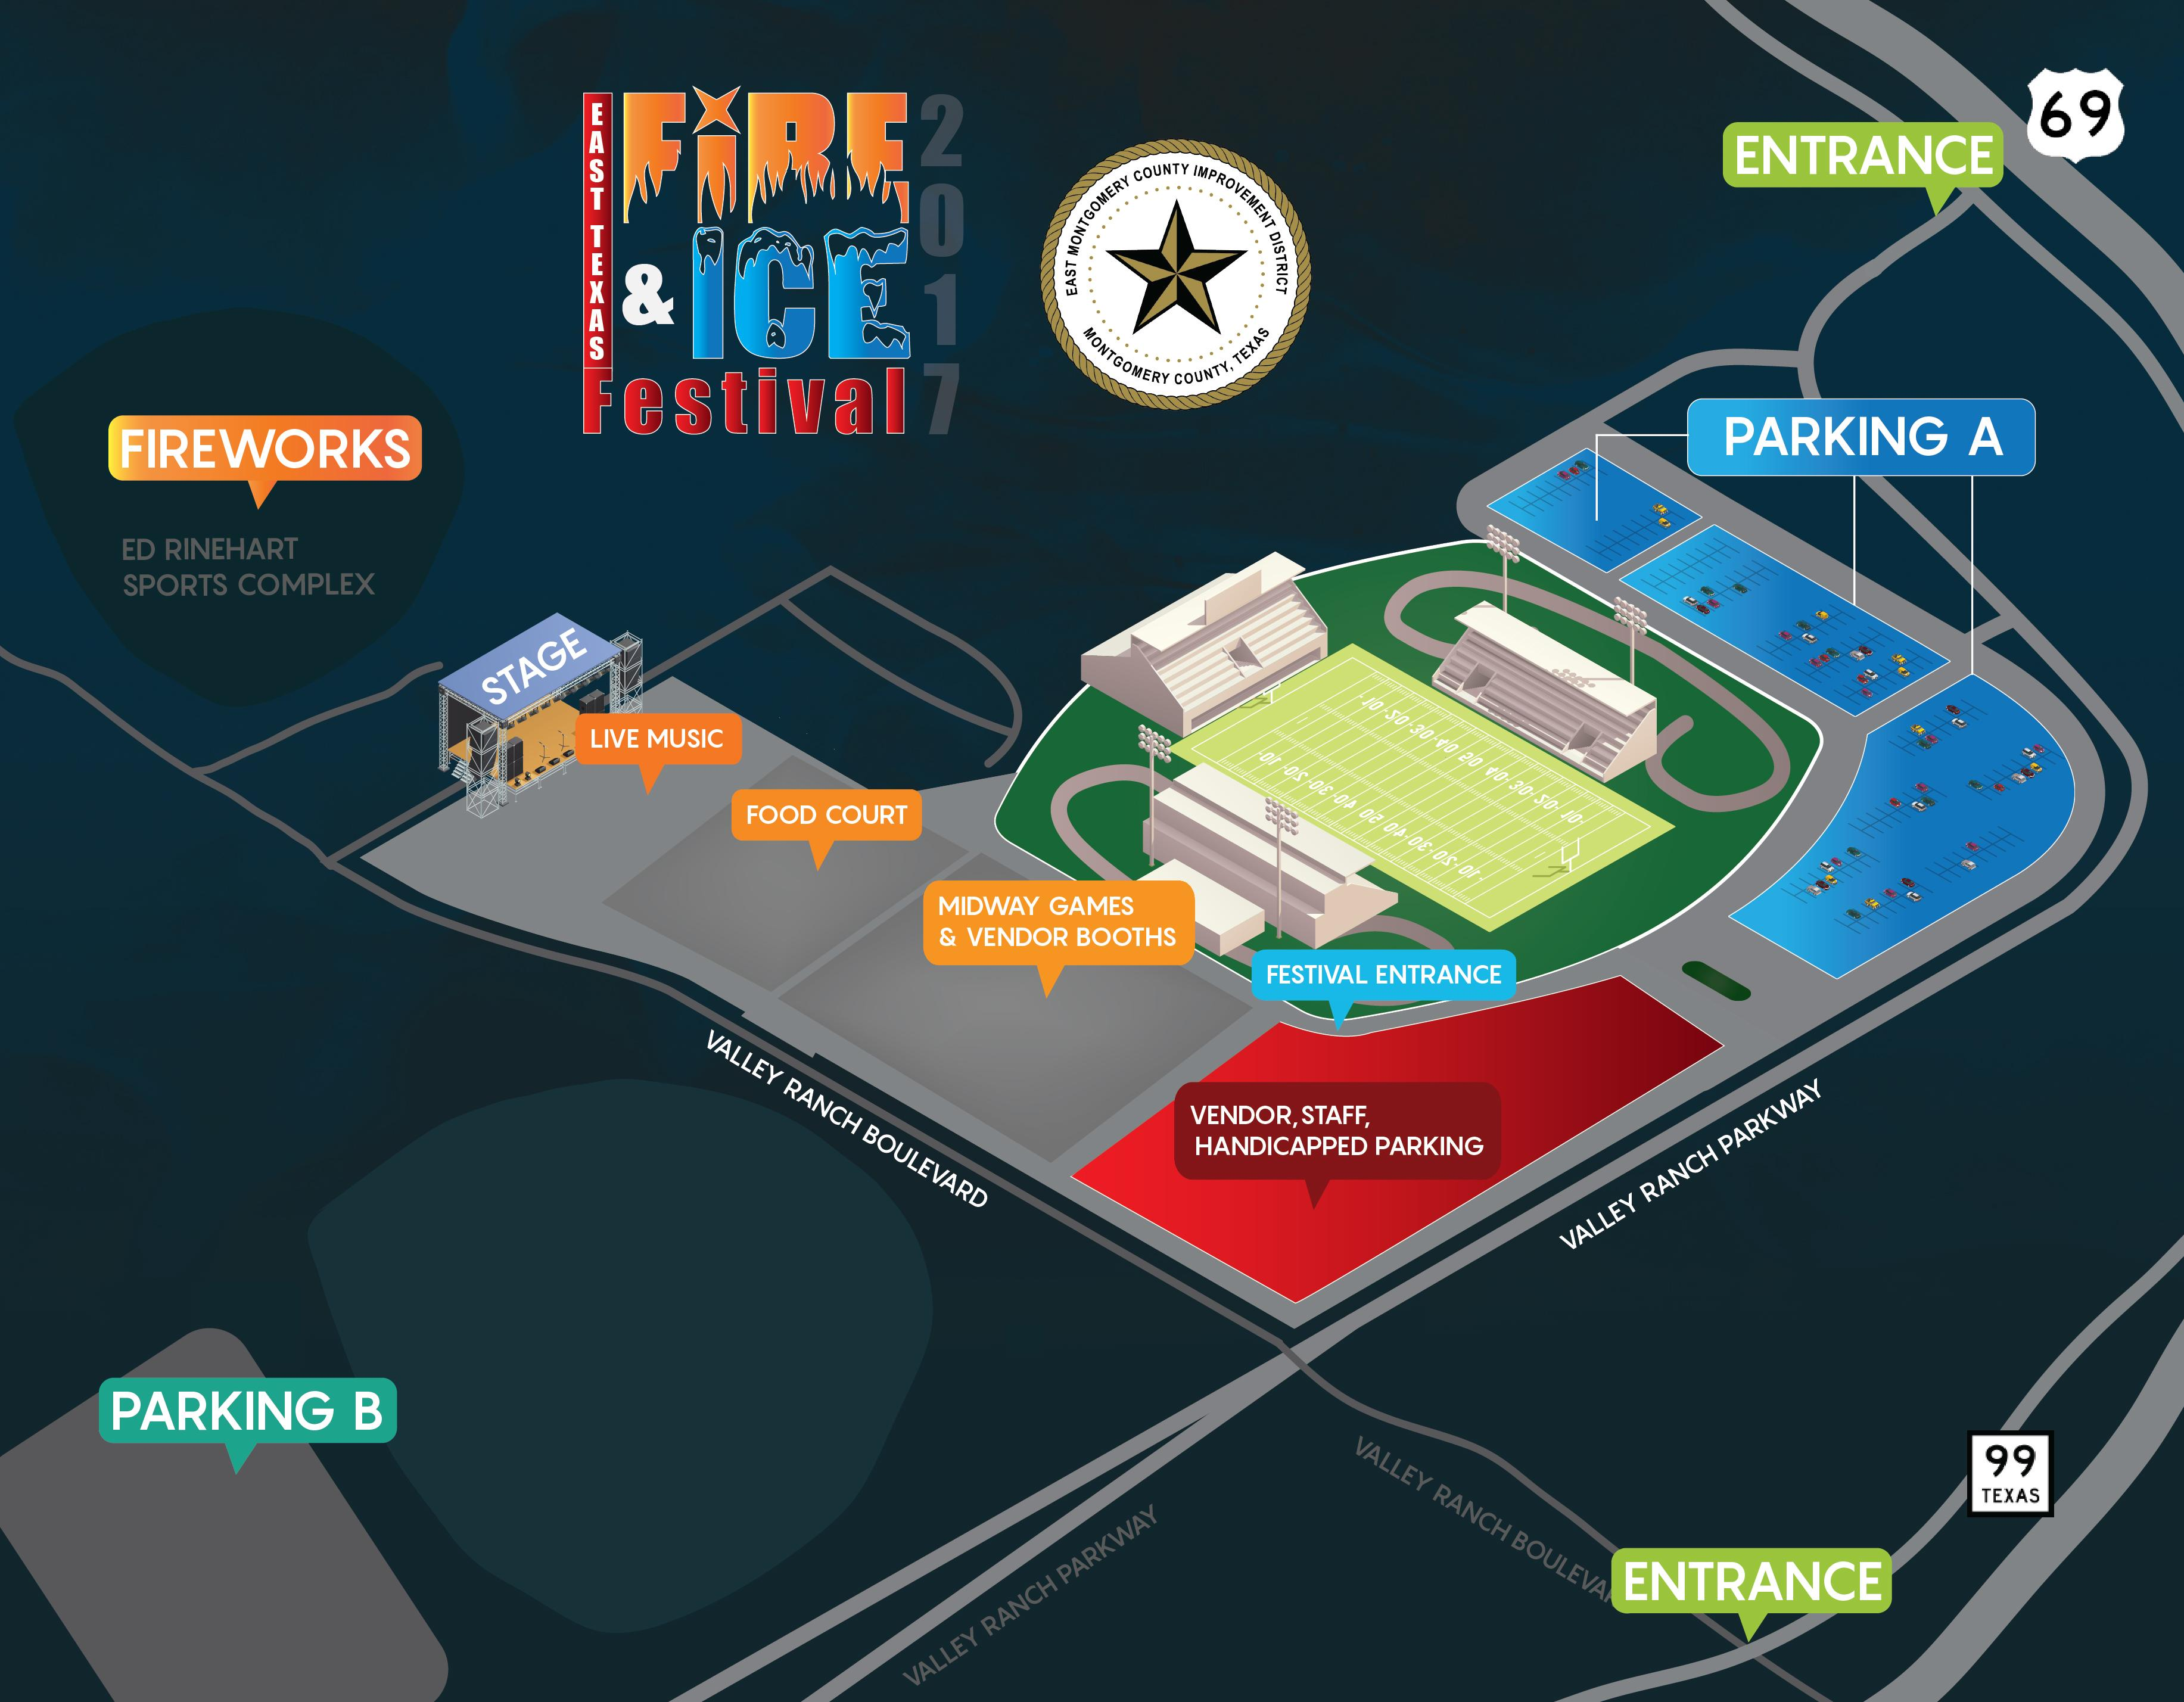 Fire and Ice Festival Map